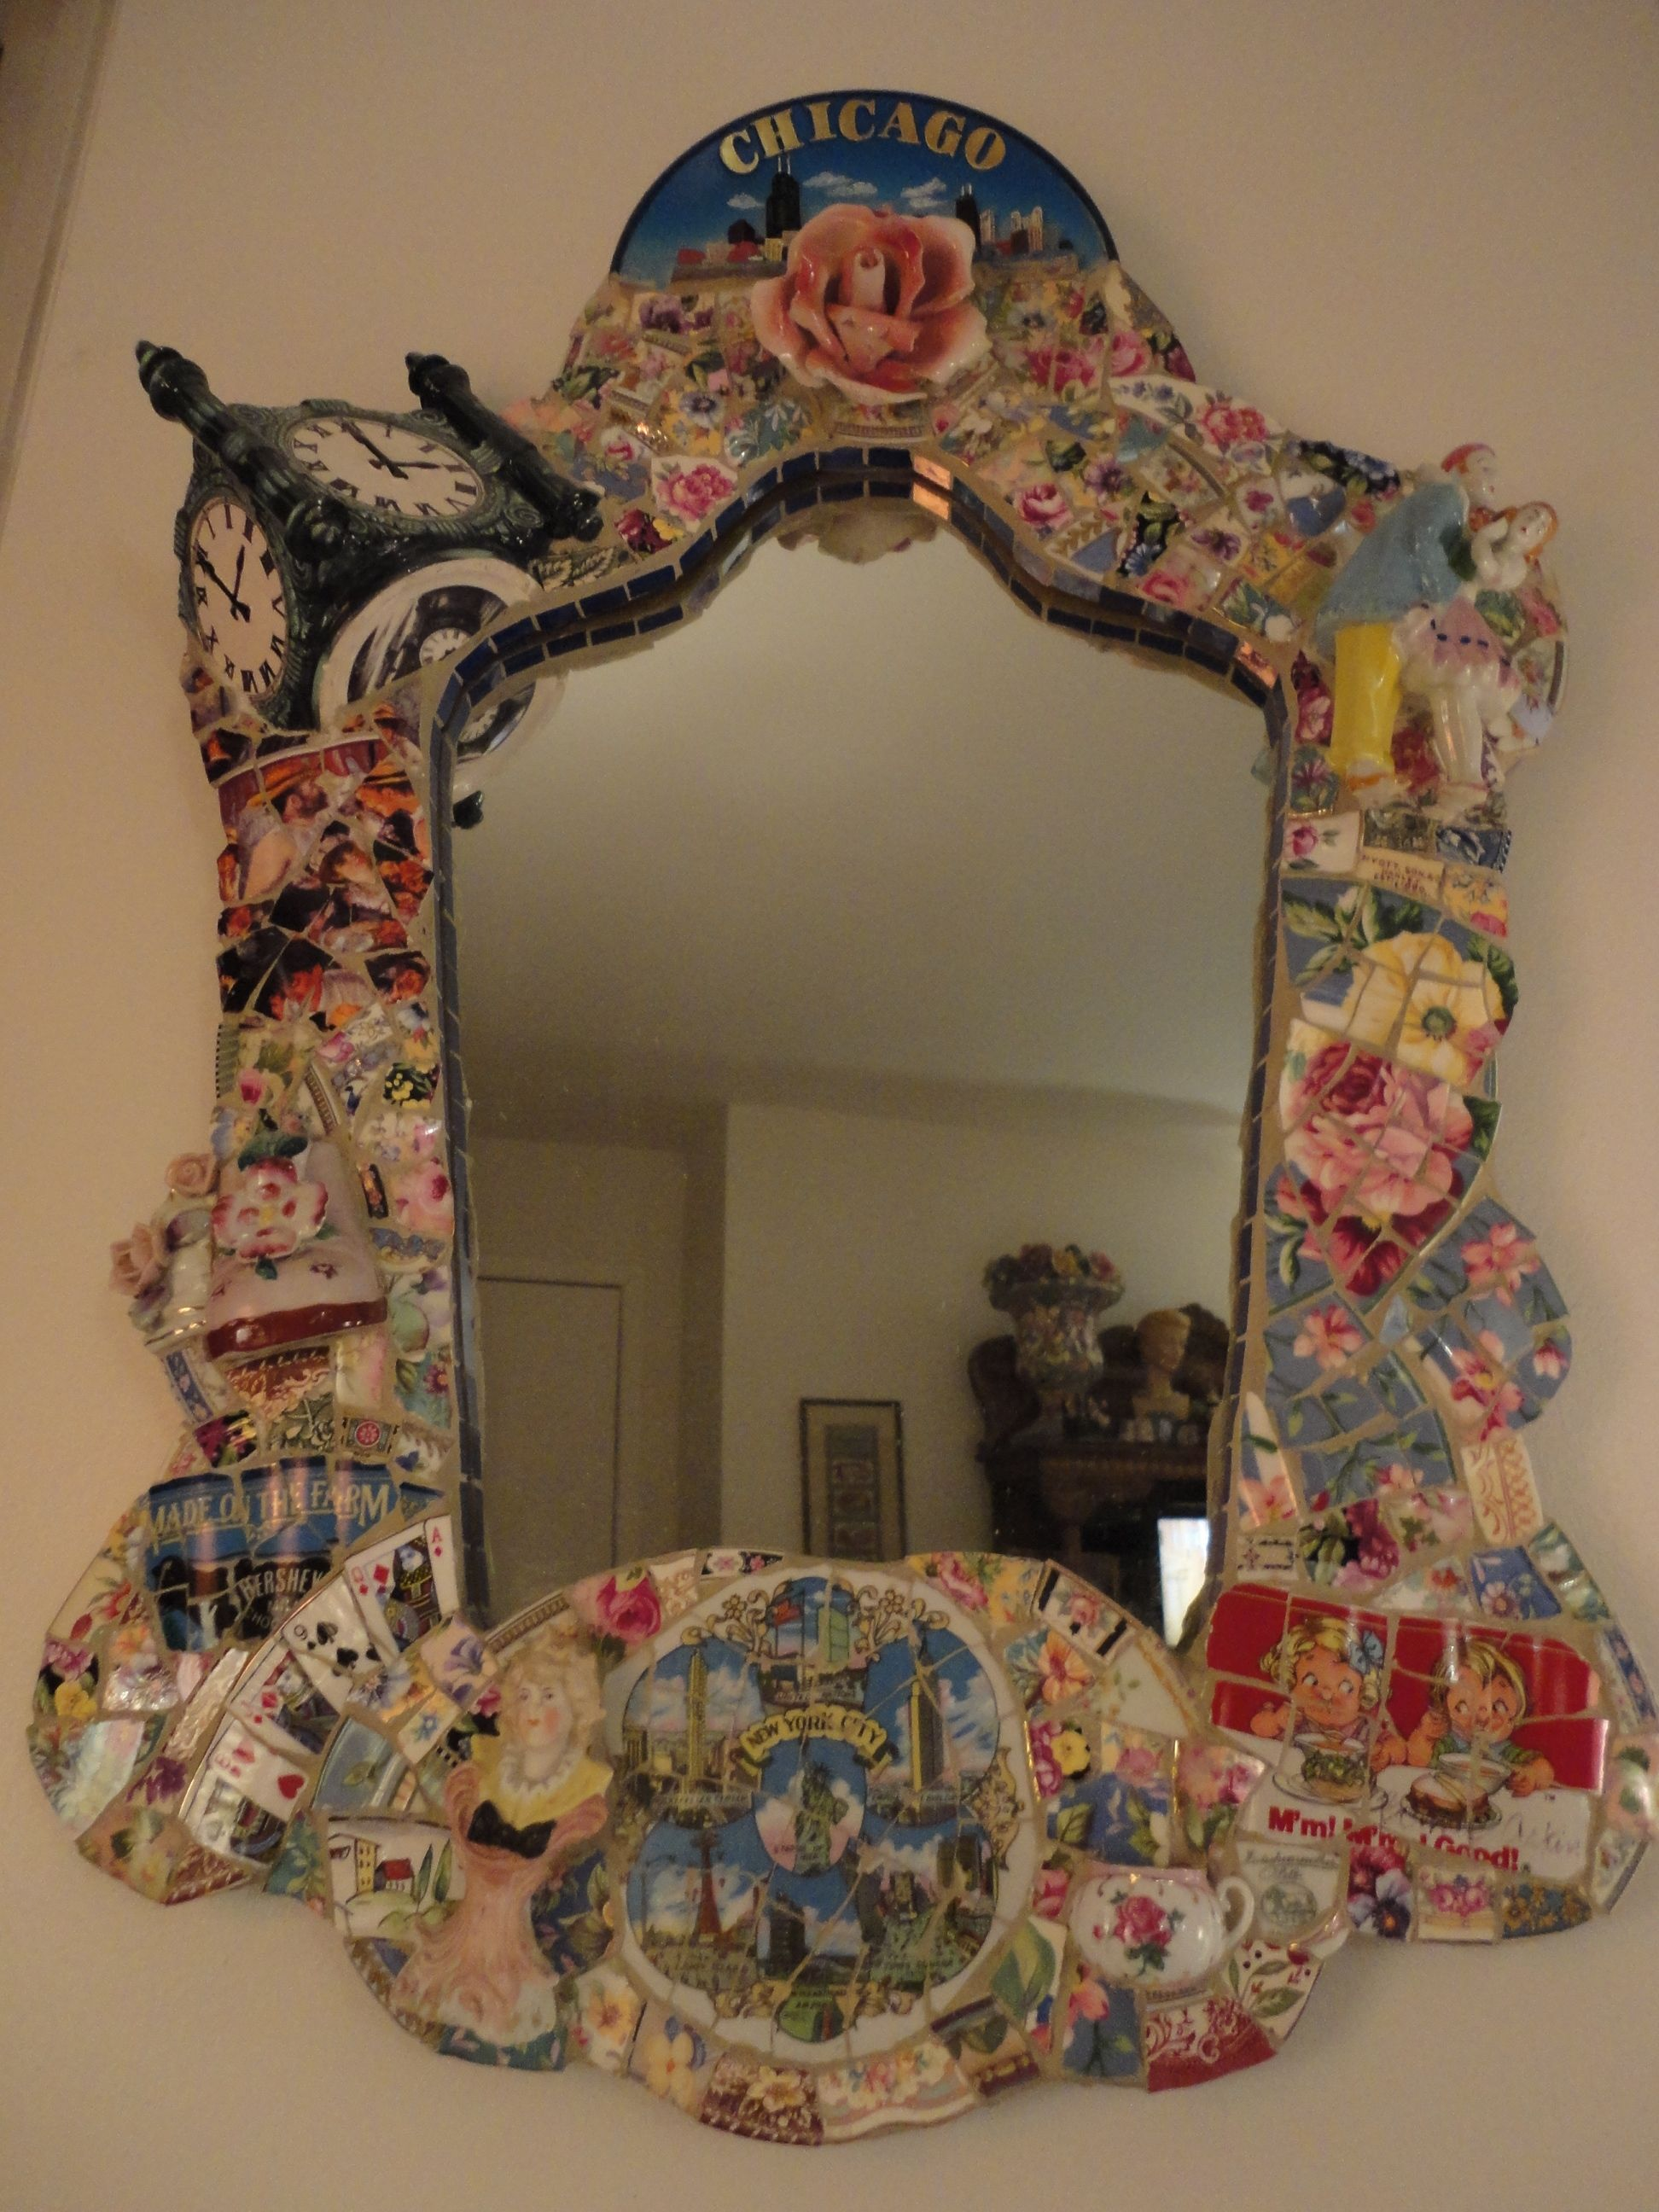 Chicago Mosaic Mirror created by Bonnie Arkin bonniearkin@gmail.com ...